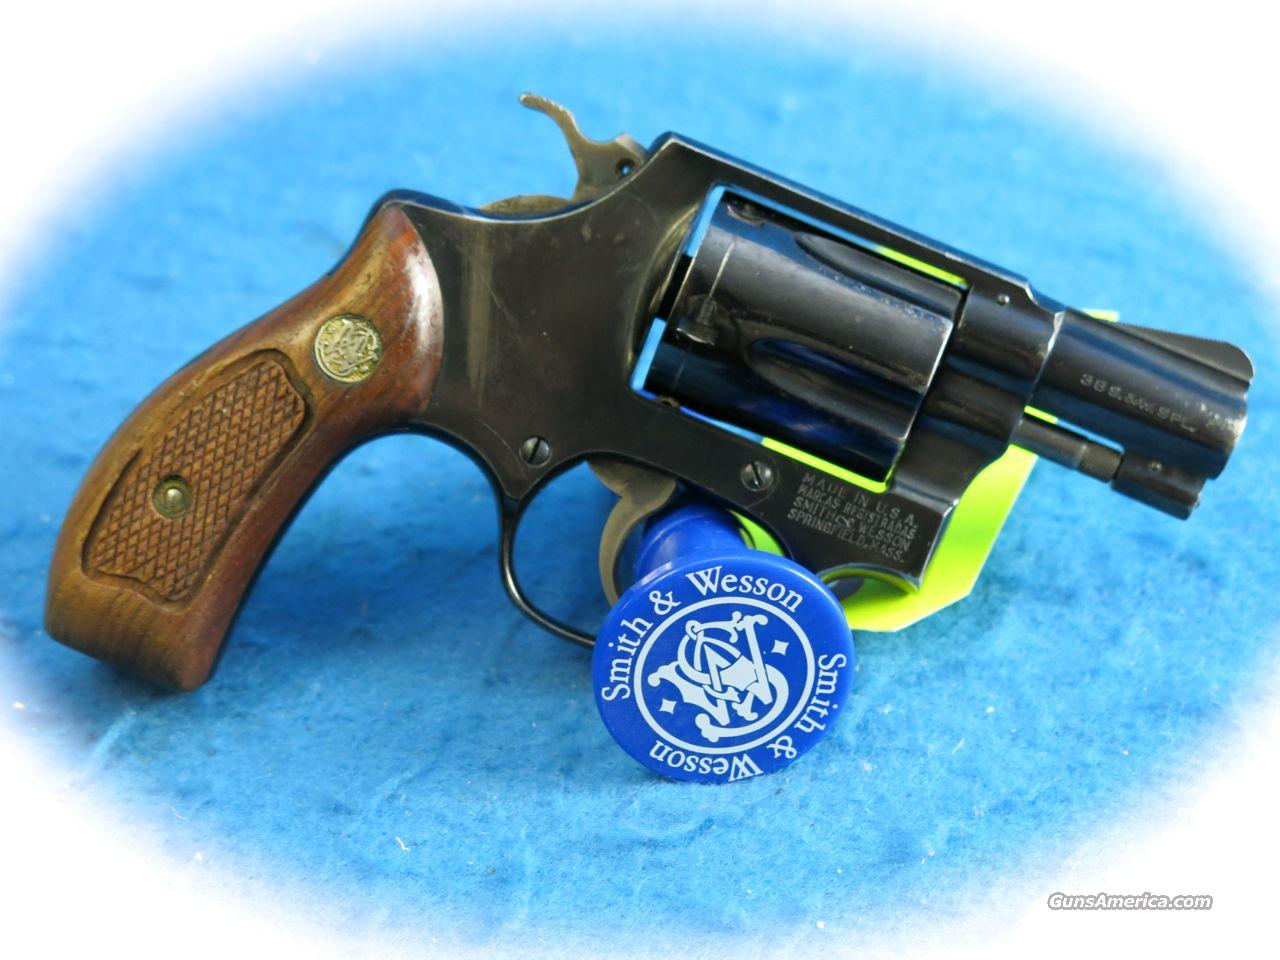 Smith & Wesson Model 36 .38 Special 5 Shot Revolver **Used**  Guns > Pistols > Smith & Wesson Revolvers > Pocket Pistols